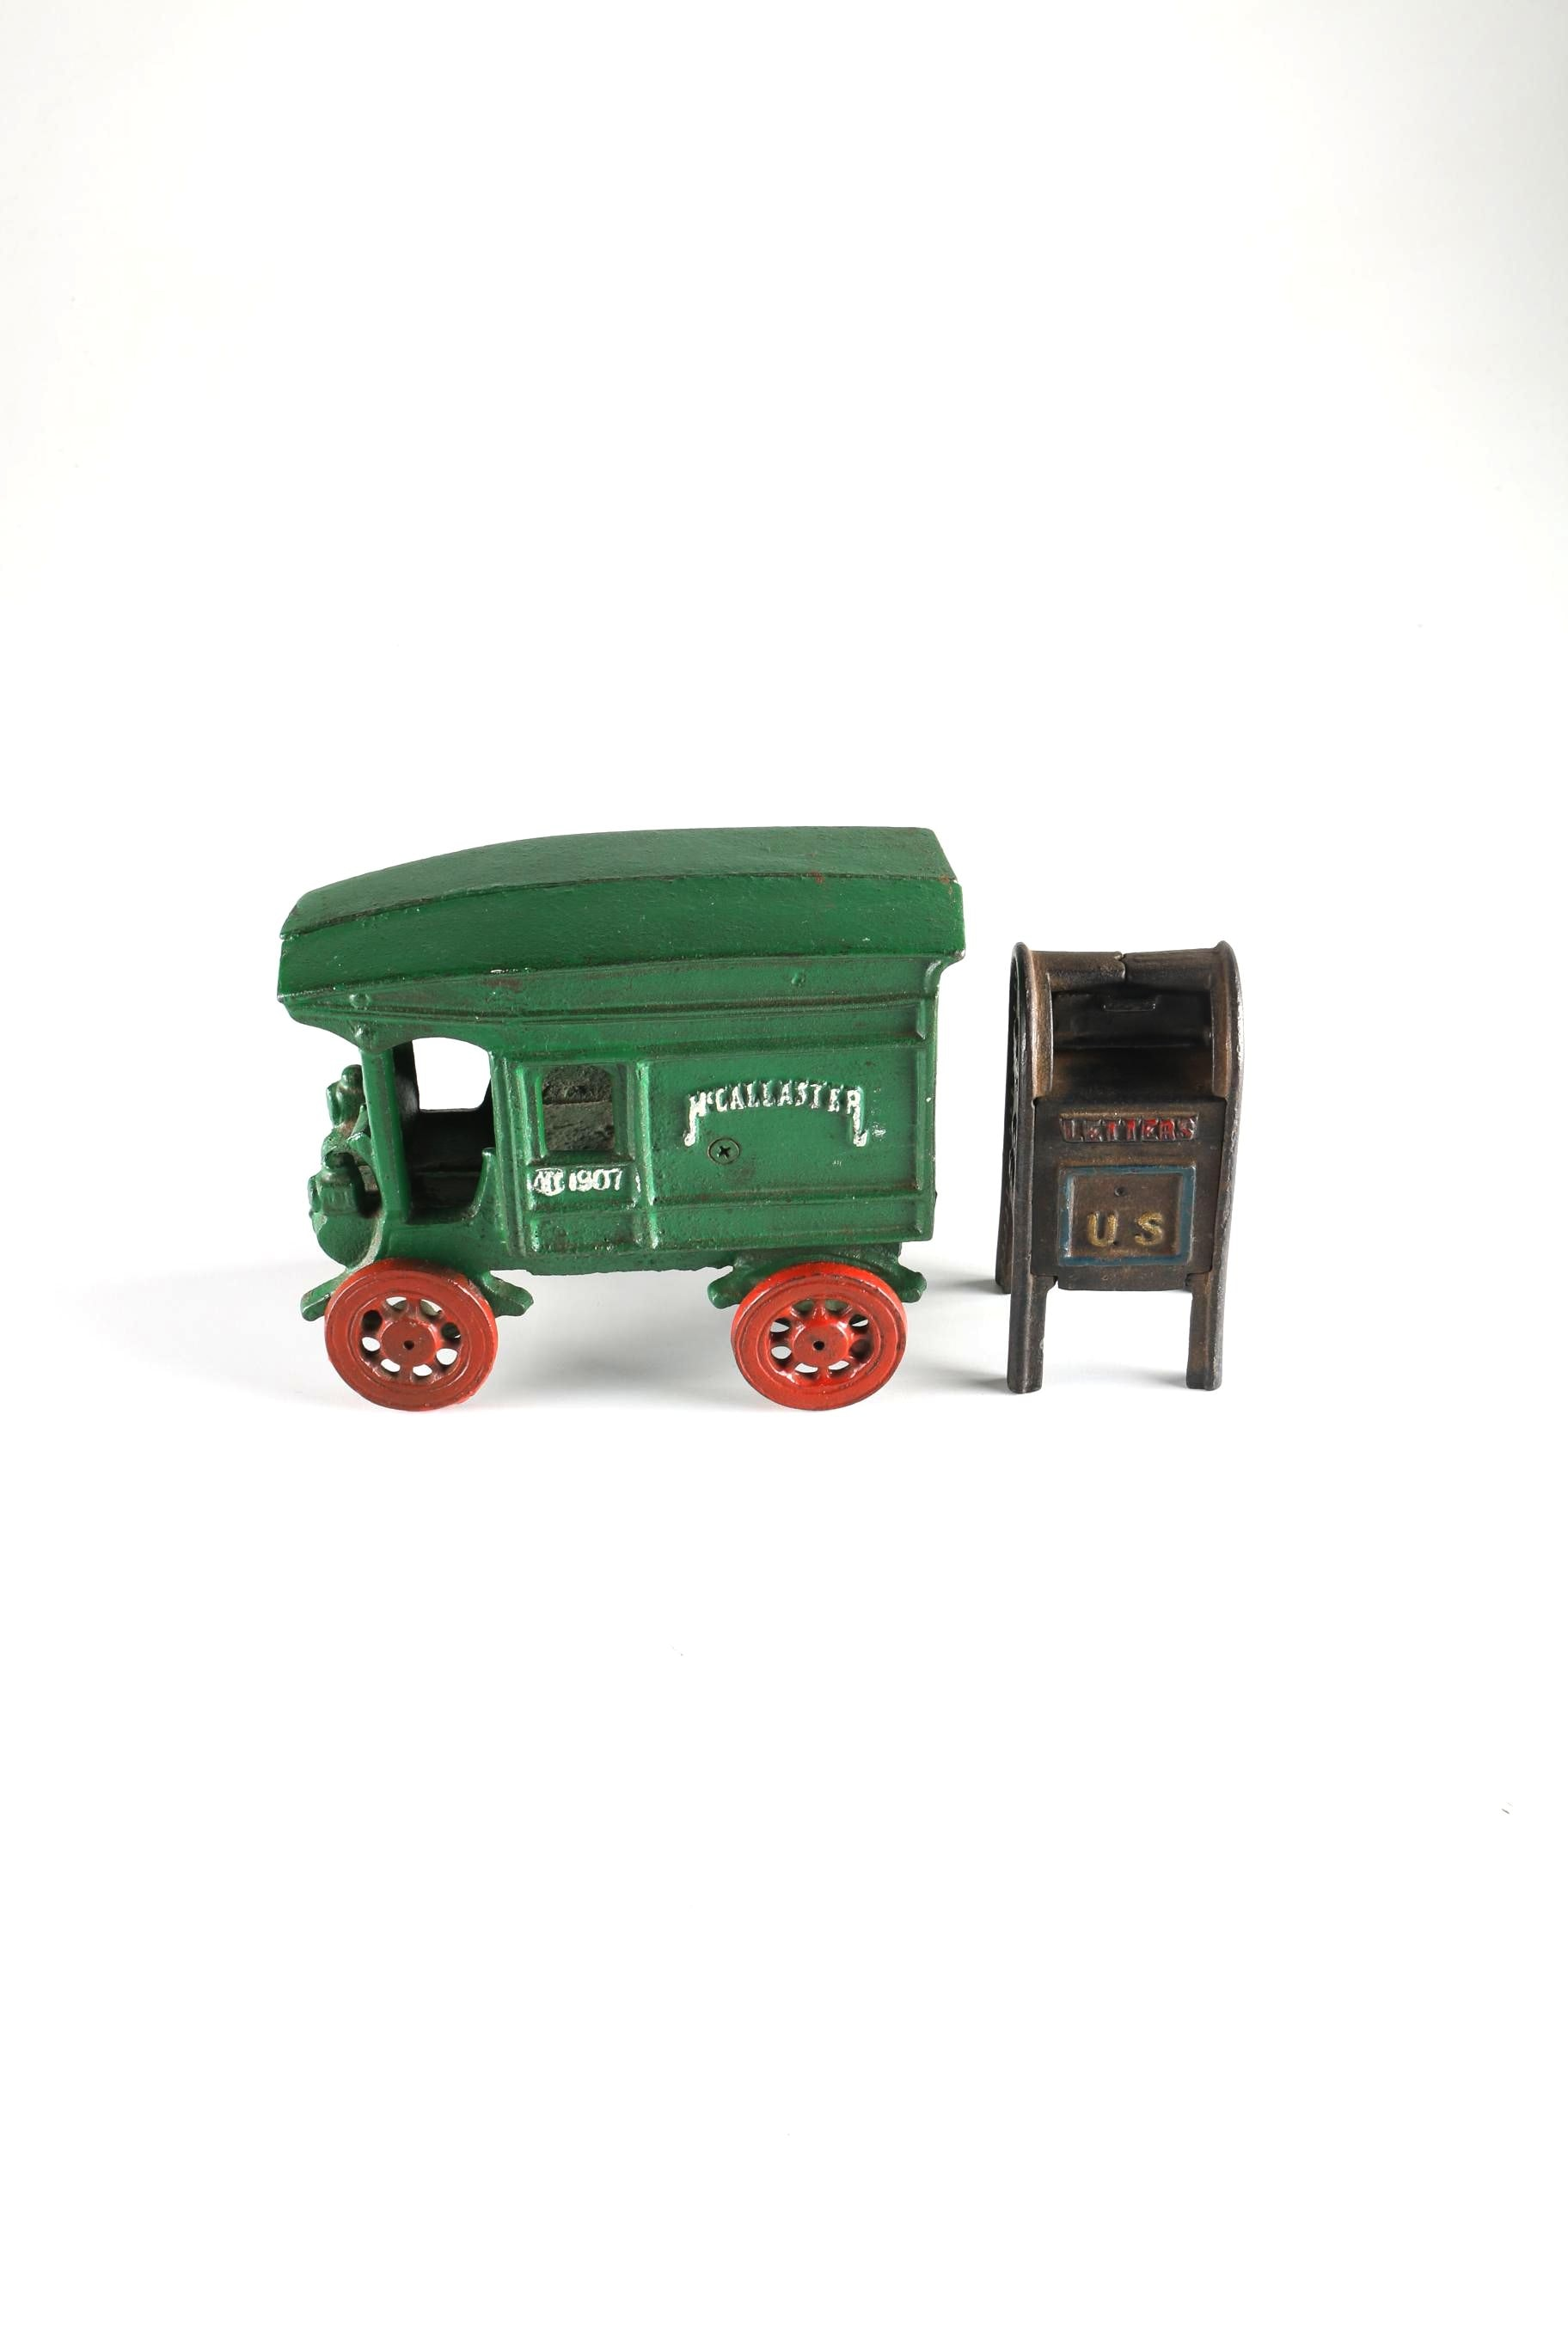 Cast Iron McCallaster Truck And U.S. Mail Box Bank